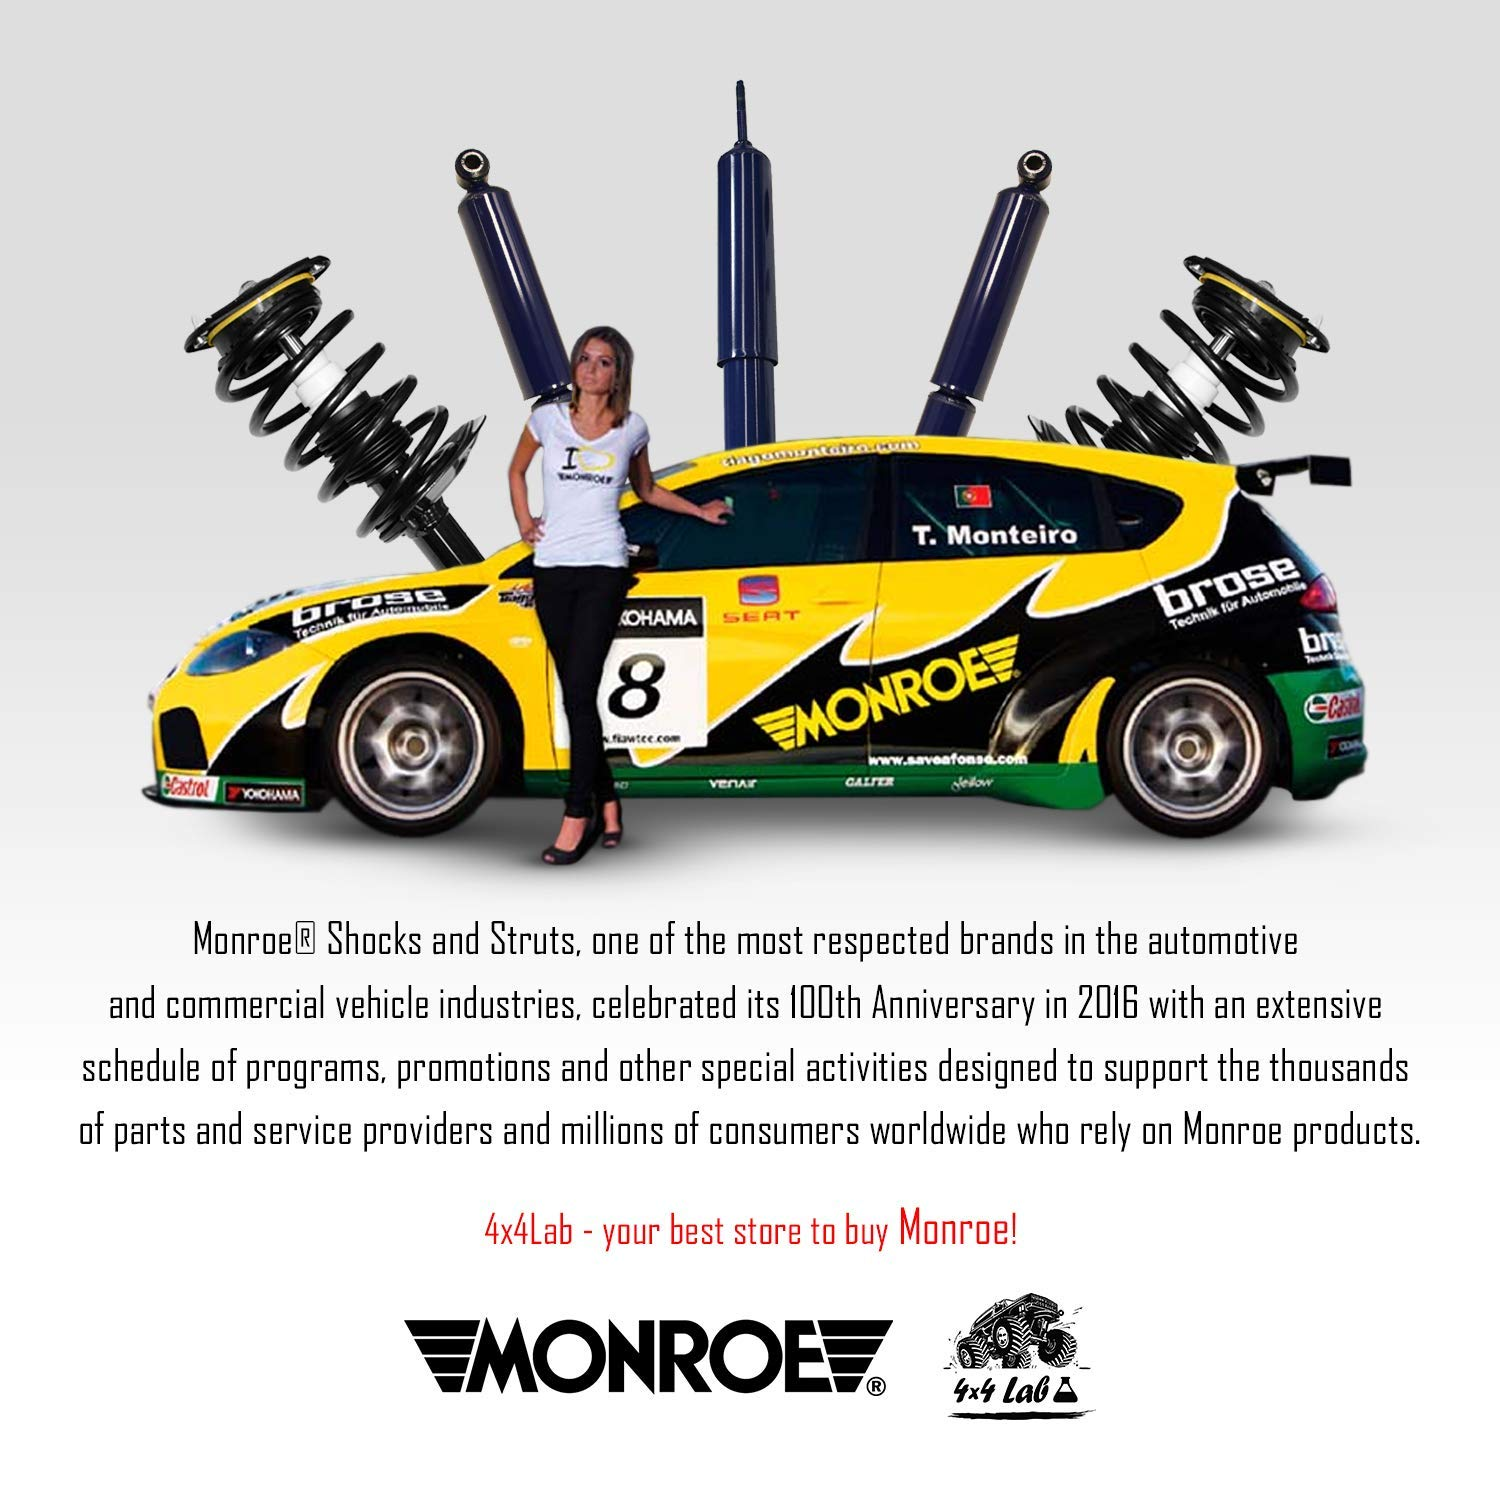 Monroe Quick Mount Kit of 2 Shocks fits Mazda 3 2004-2009 OESpectrum Rear for Replacement Touring /& Offroad Performance Leveling